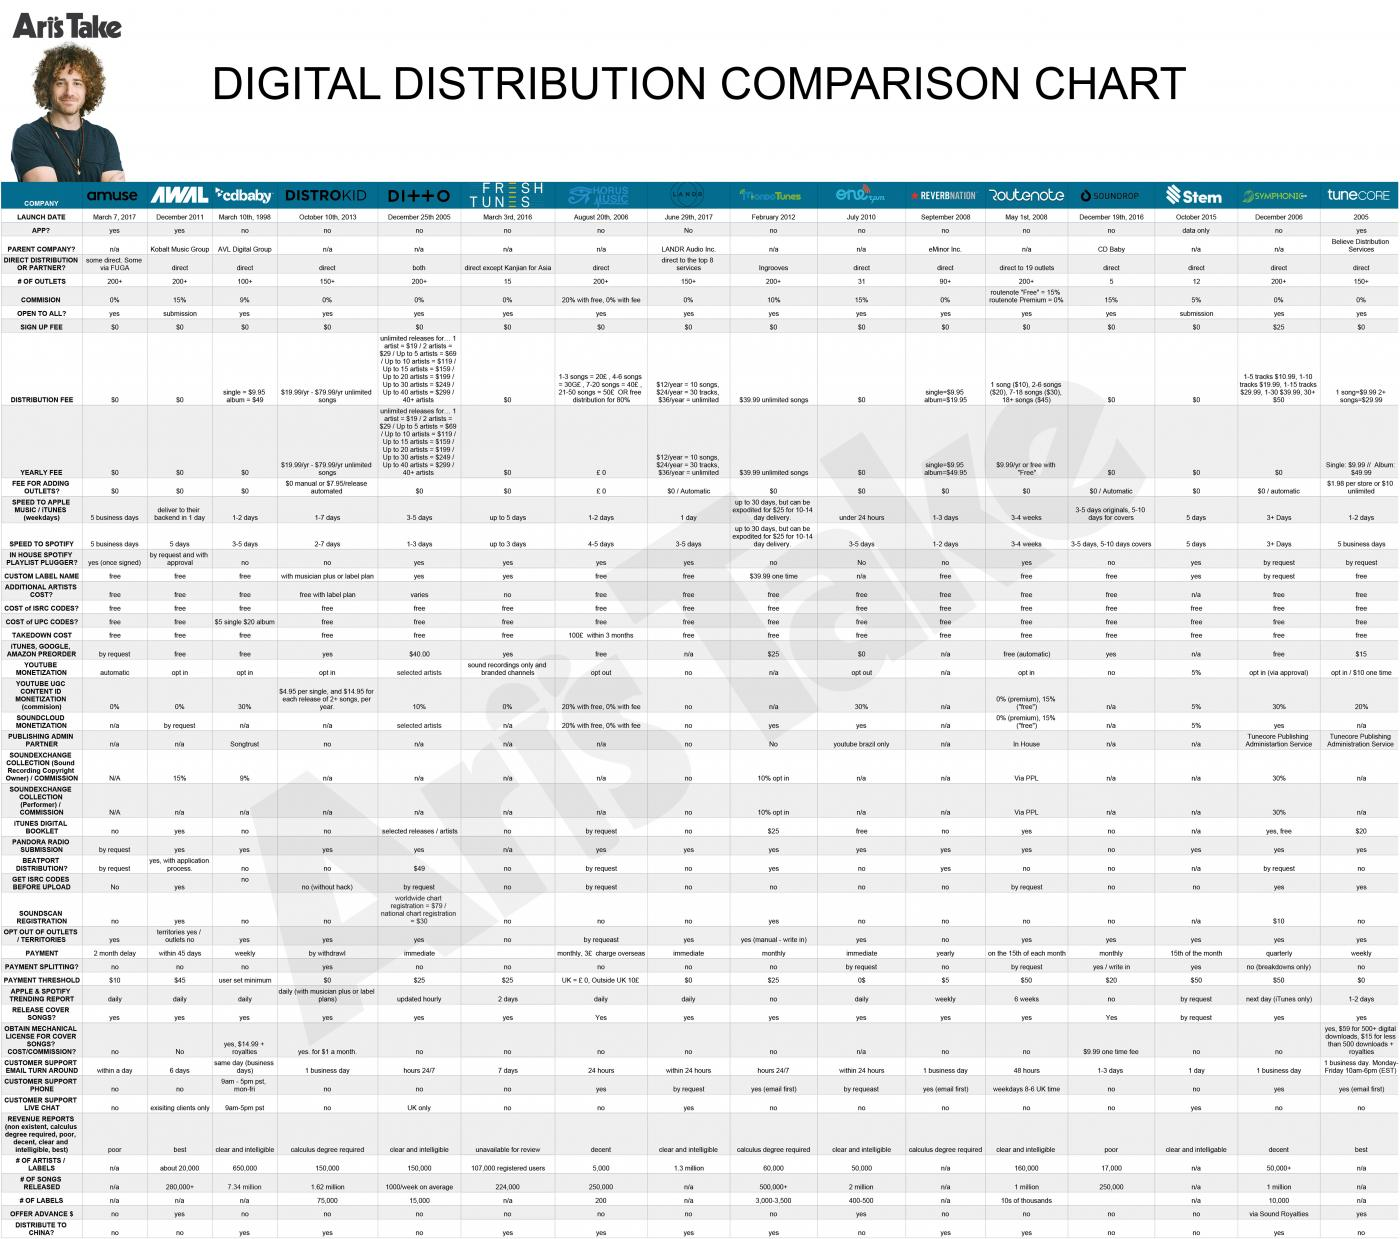 Ari's Take: (Page 2) Digital Distribution Terms Defined